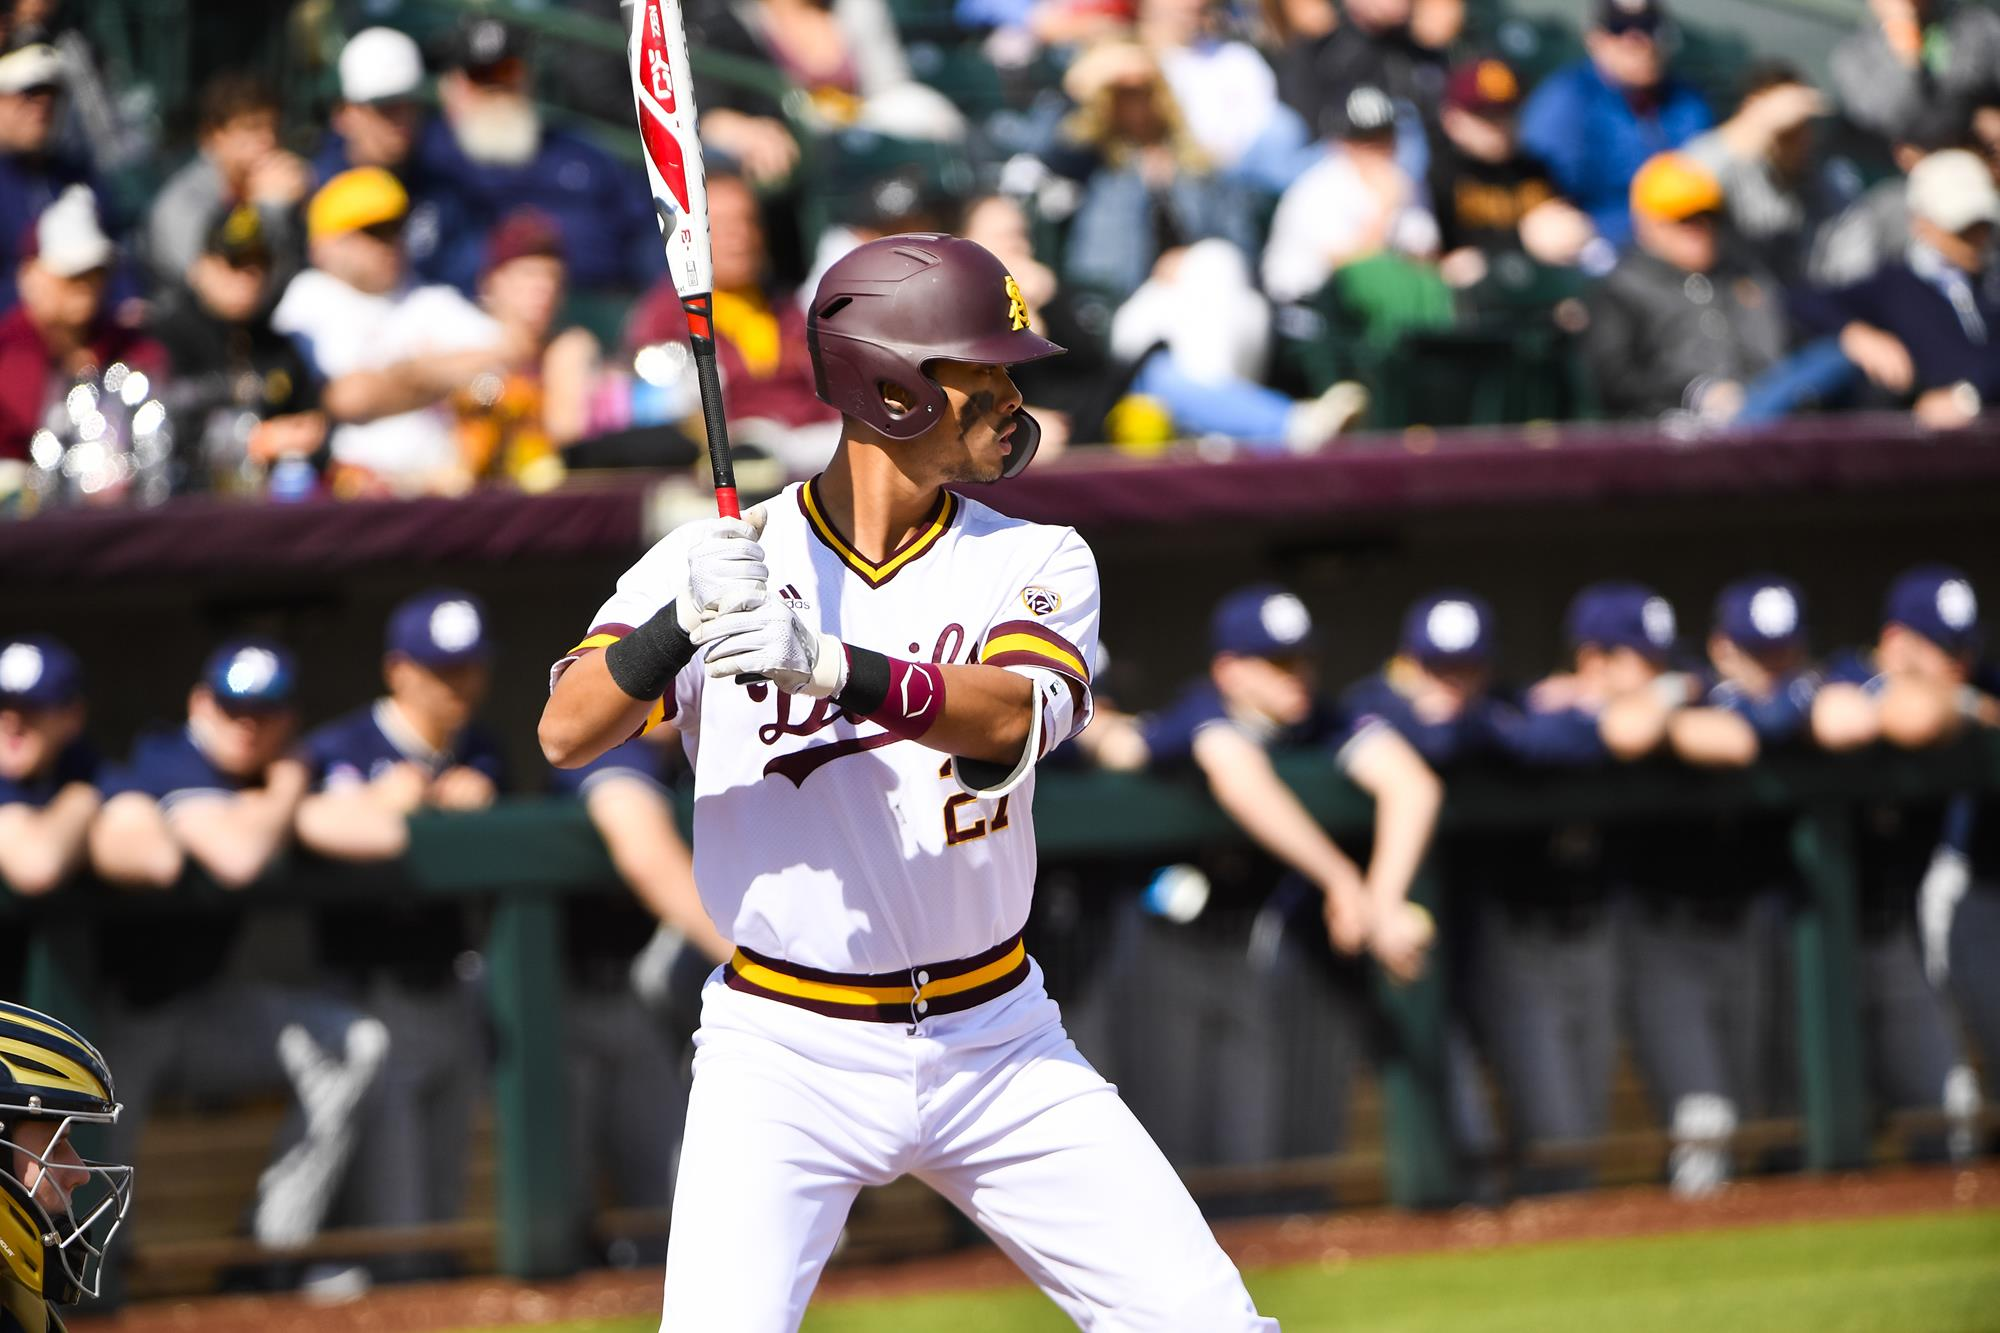 Lyle Lin Baseball Arizona State University Athletics